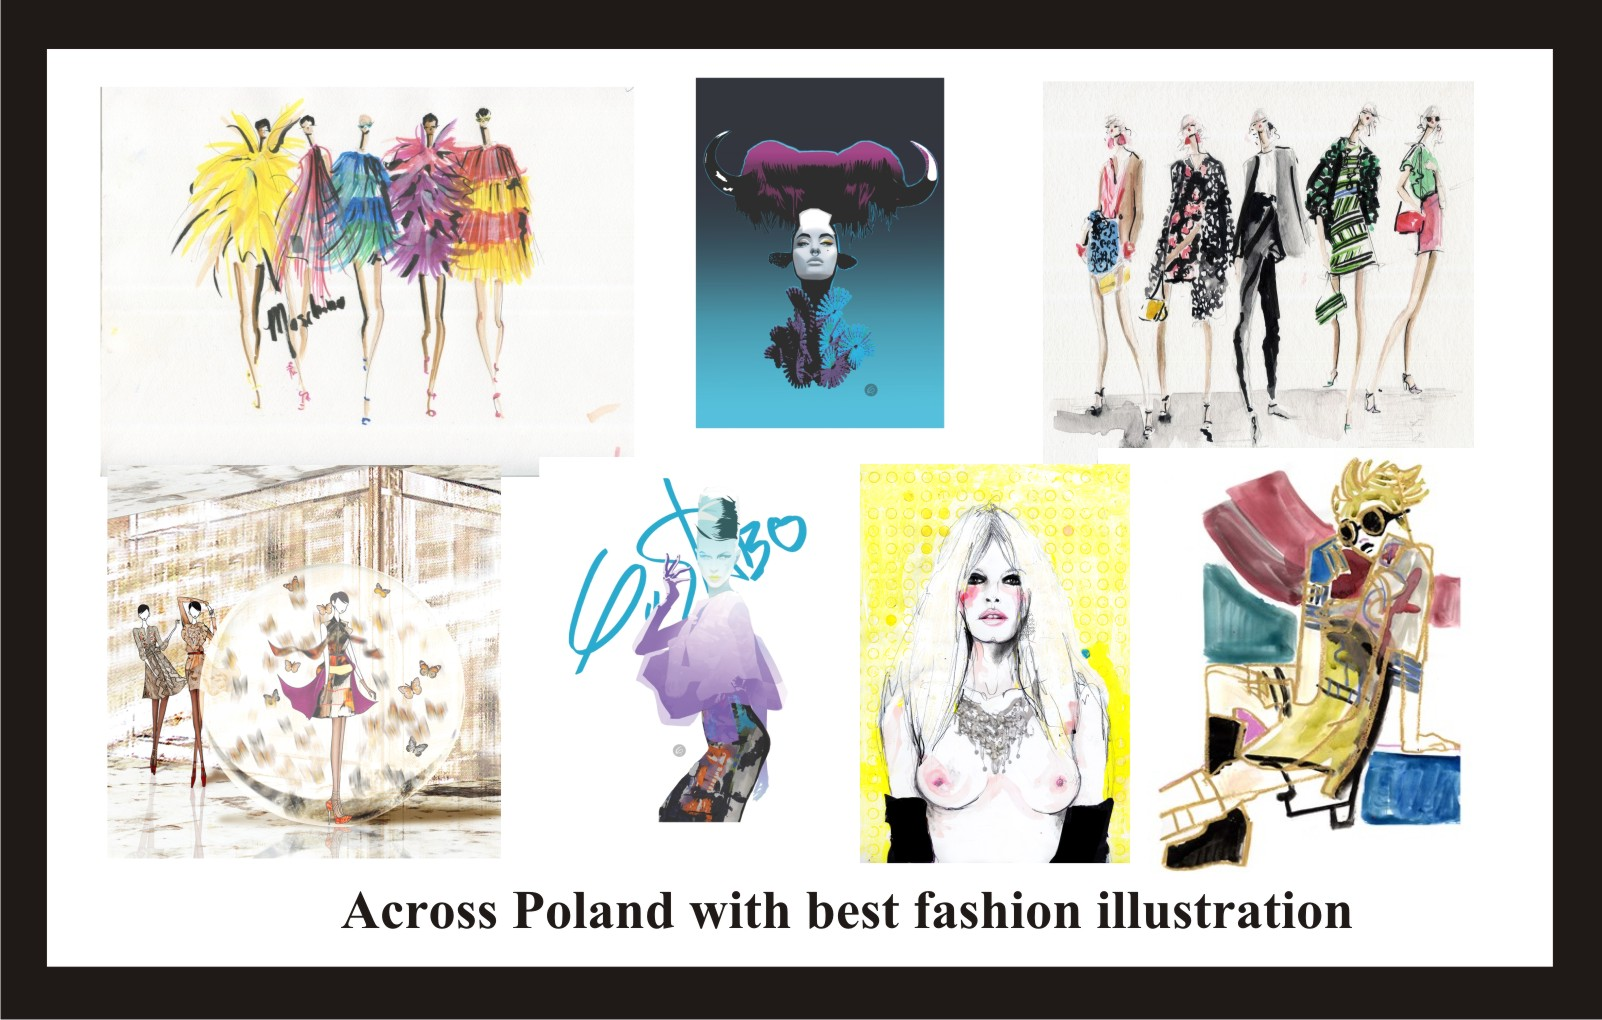 across-poland-fashion-illustration-2